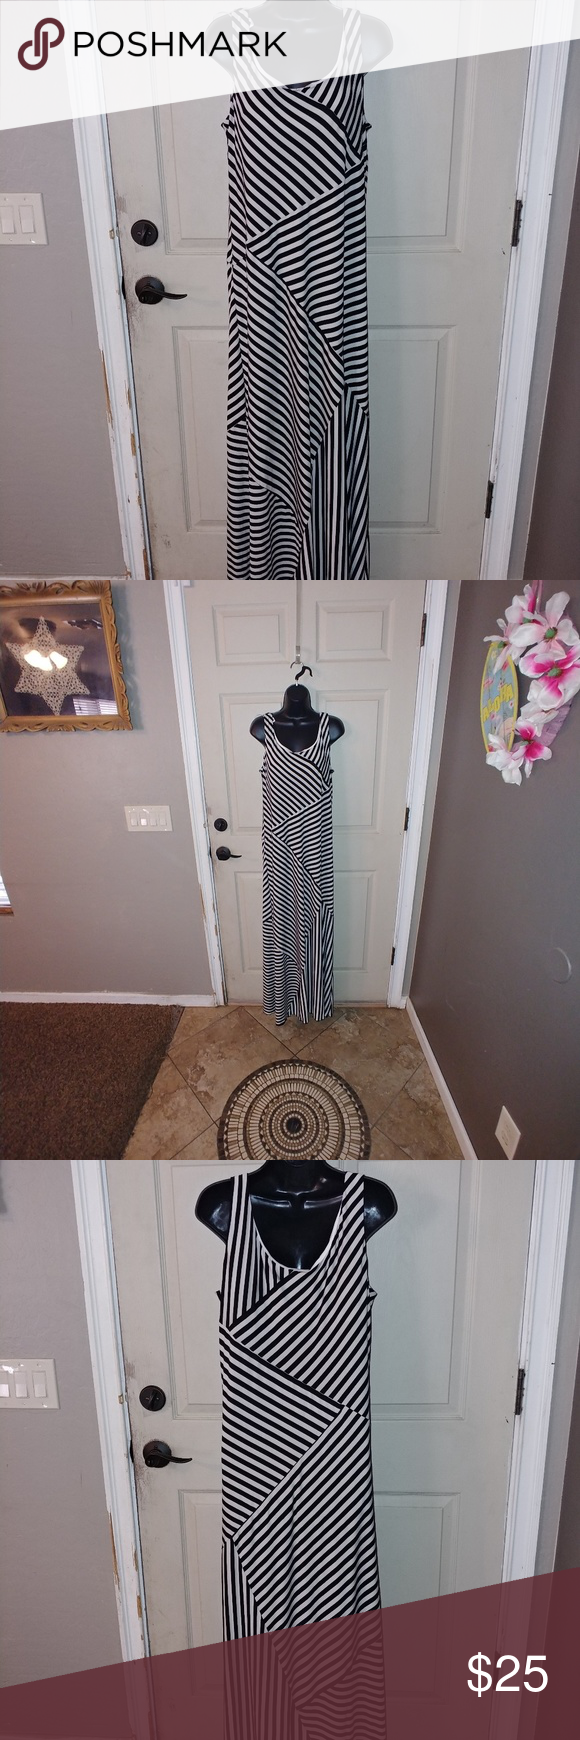 Black and white maxi dress Long maxi dress Size XL Black and white stripes Built in material around breast area ***************** 1-08022018 Alyx Dresses Maxi